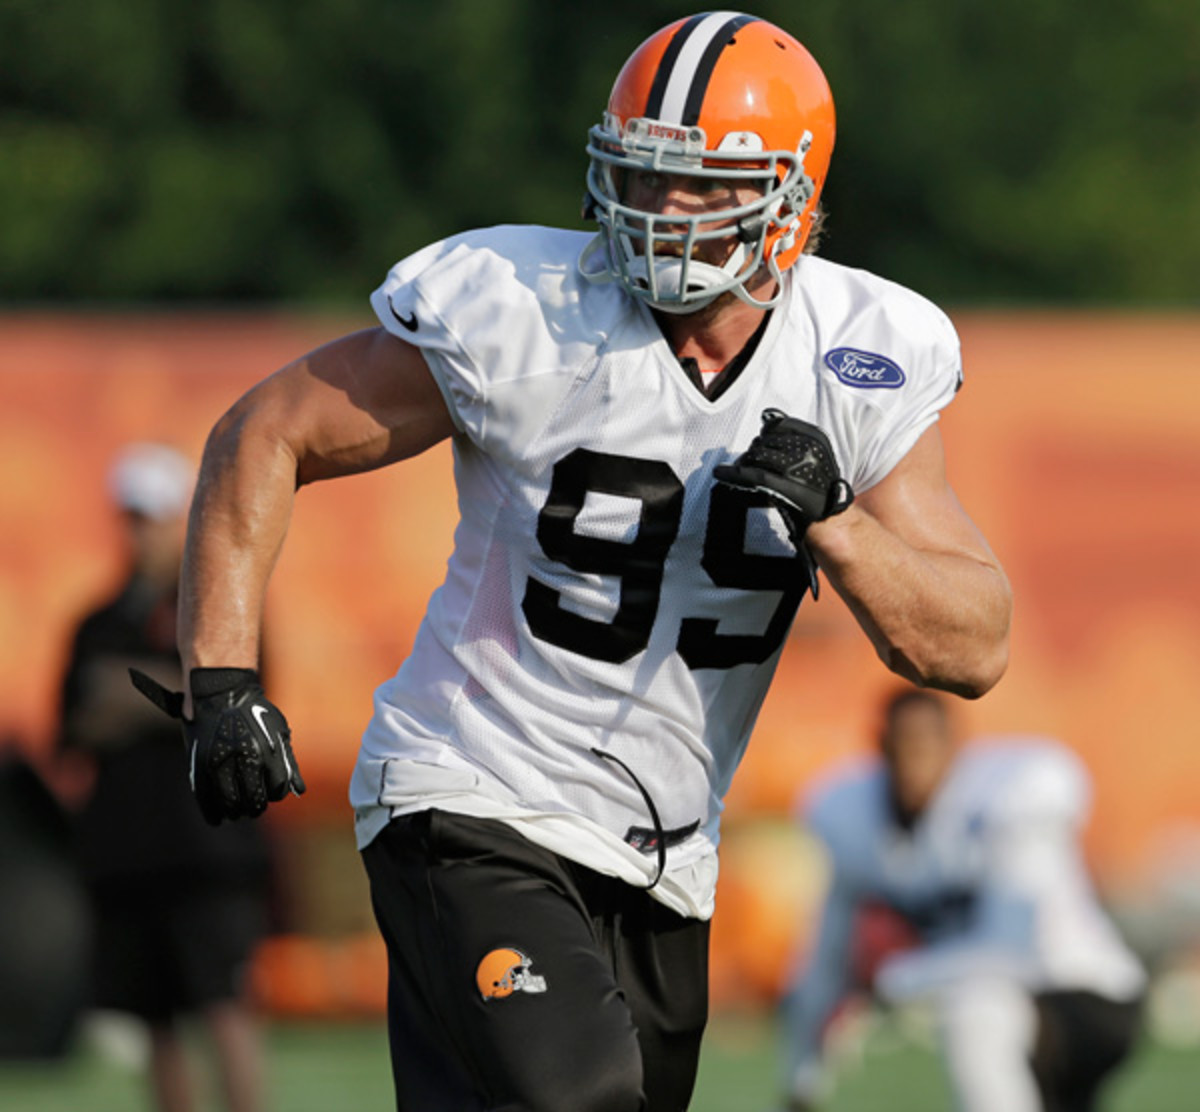 Offseason acquisition Paul Kruger should fit right in with new defensive coordinator Ray Horton's blitzing scheme.